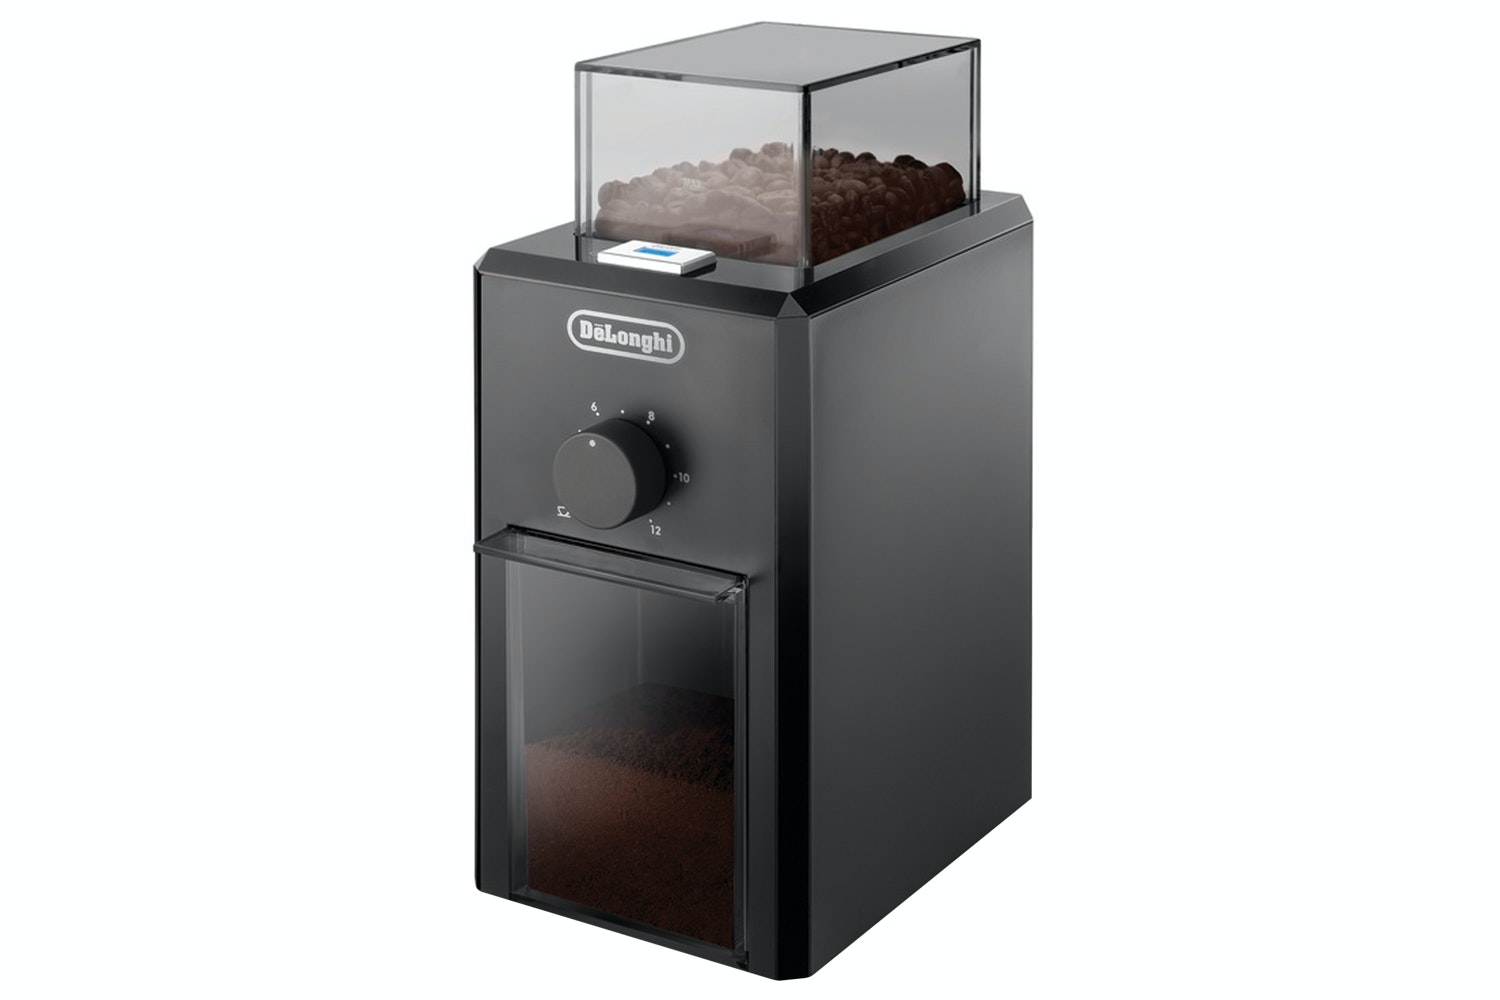 Delonghi Coffee Grinder | Black